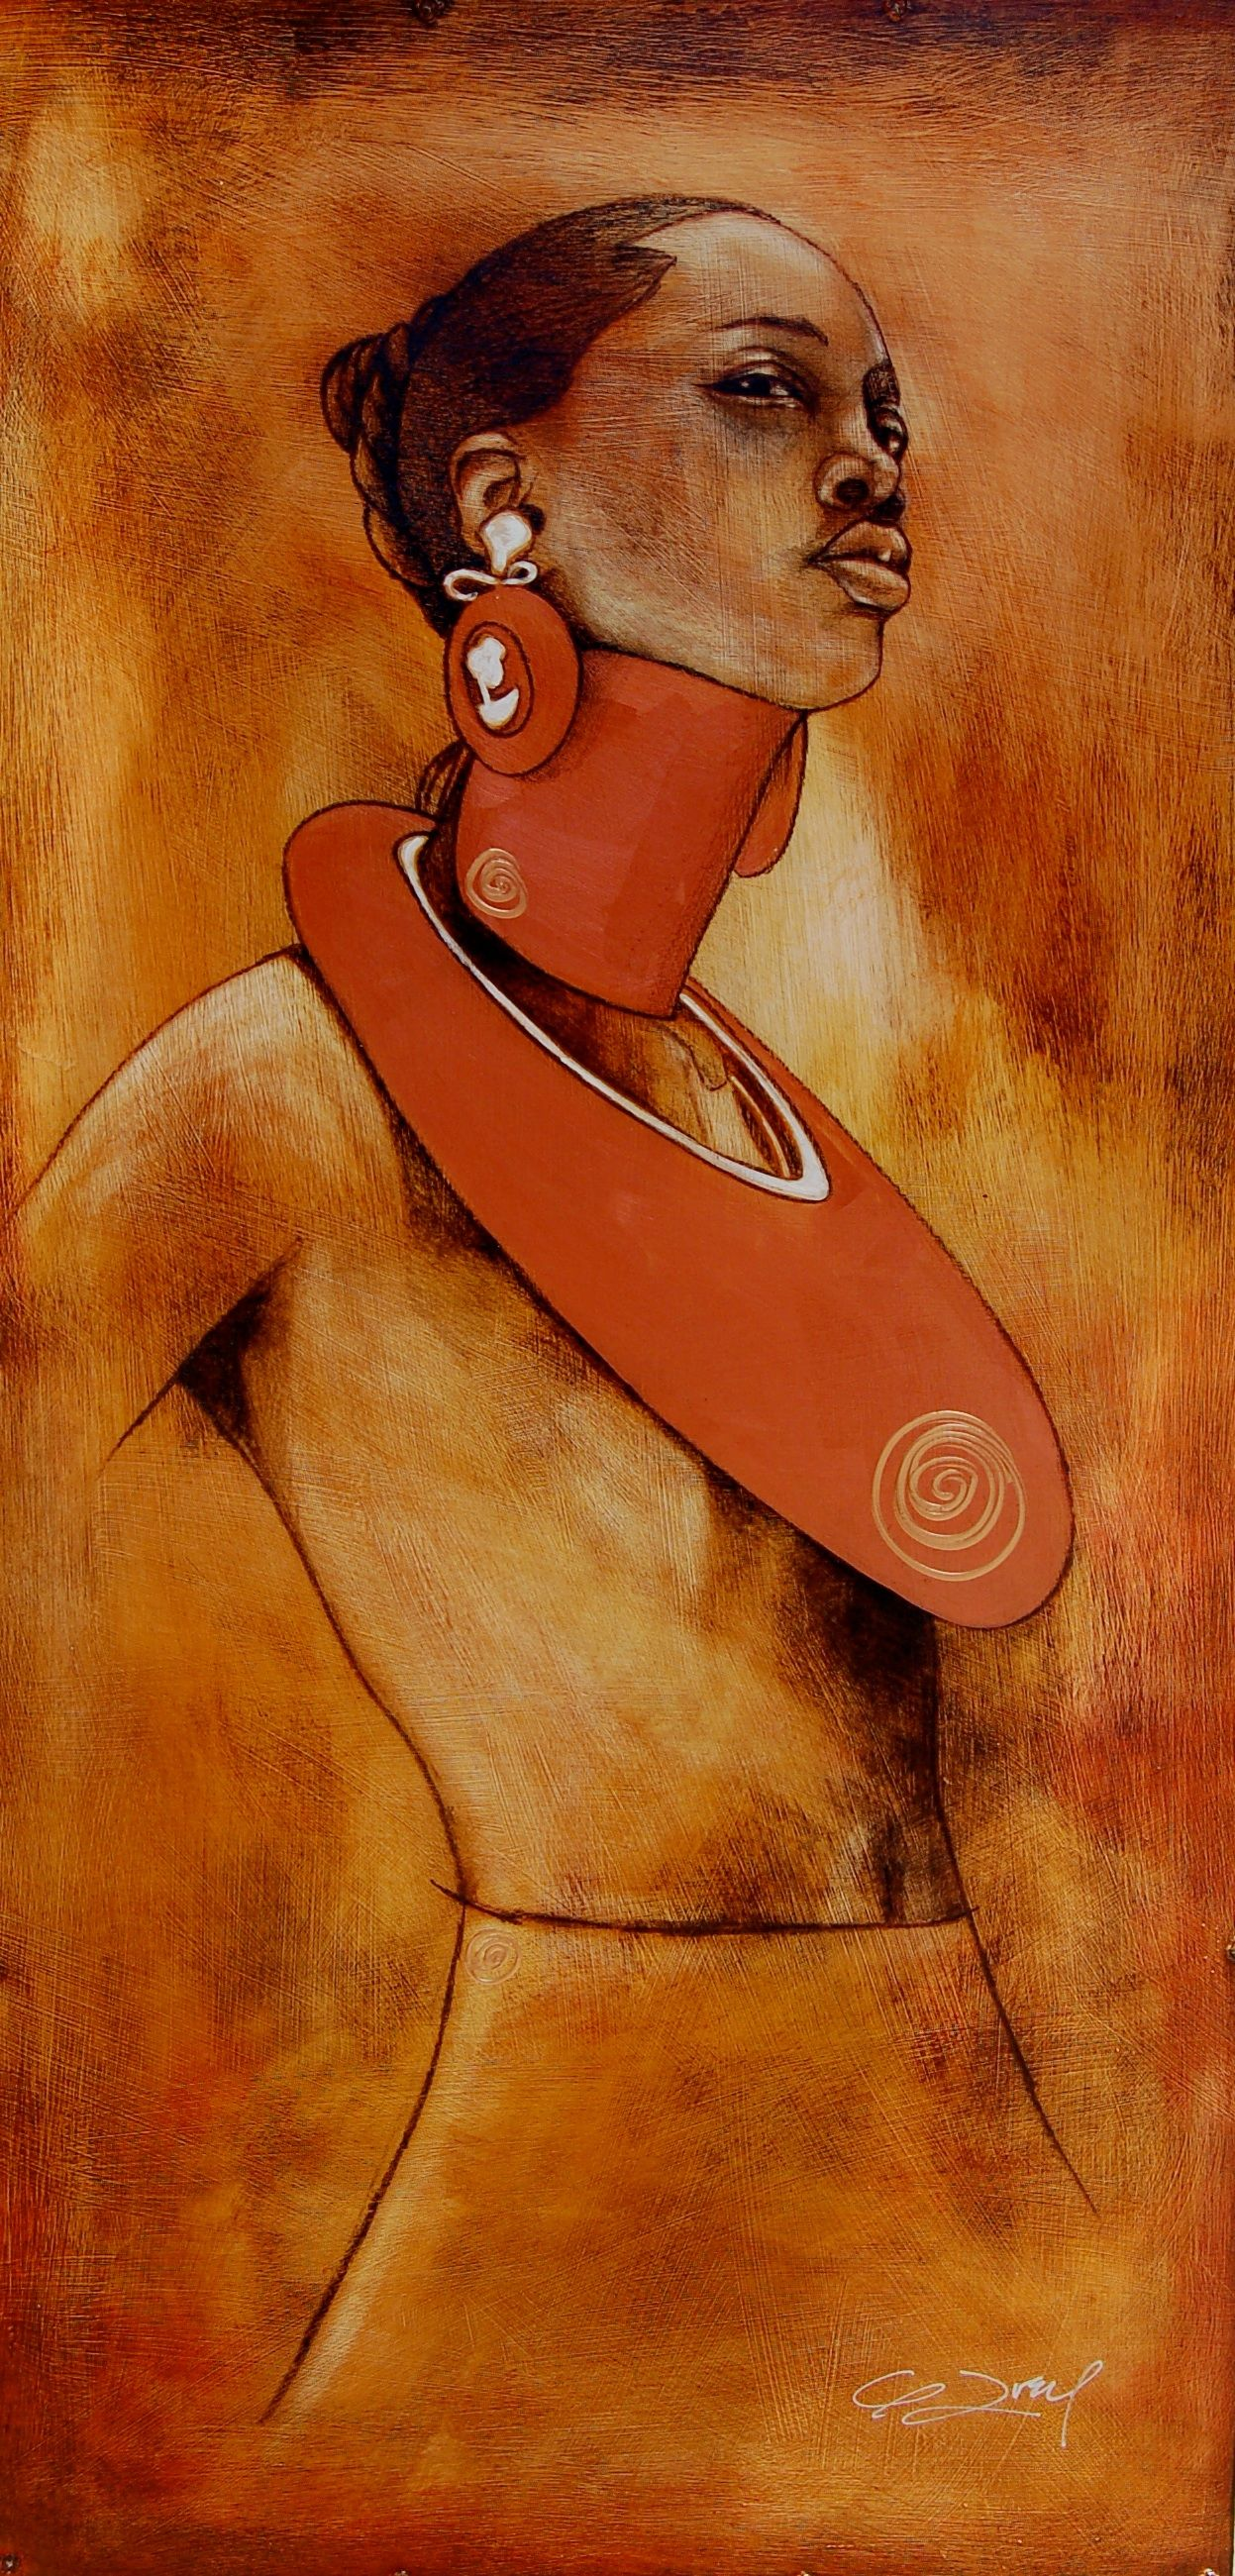 Artist: Gerald Ivey, acrylic on wood {contemporary art female indigenous african back woman painting} geraldivey.com